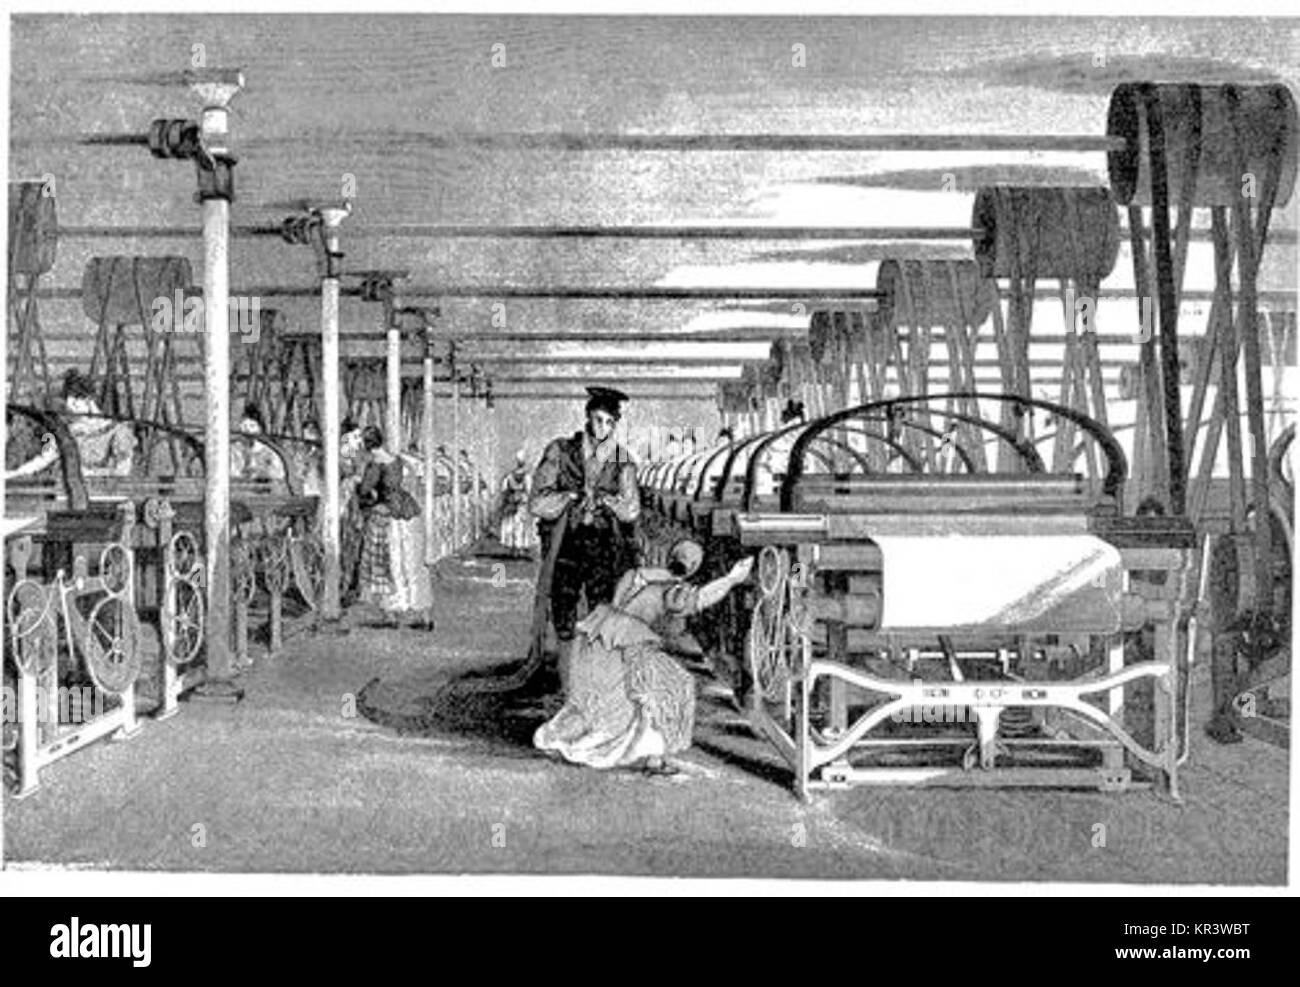 industrial revolution period During the renaissance period, they focused mainly on new thinking and creativity, whereas in the industrial revolution during the industrial revolution.